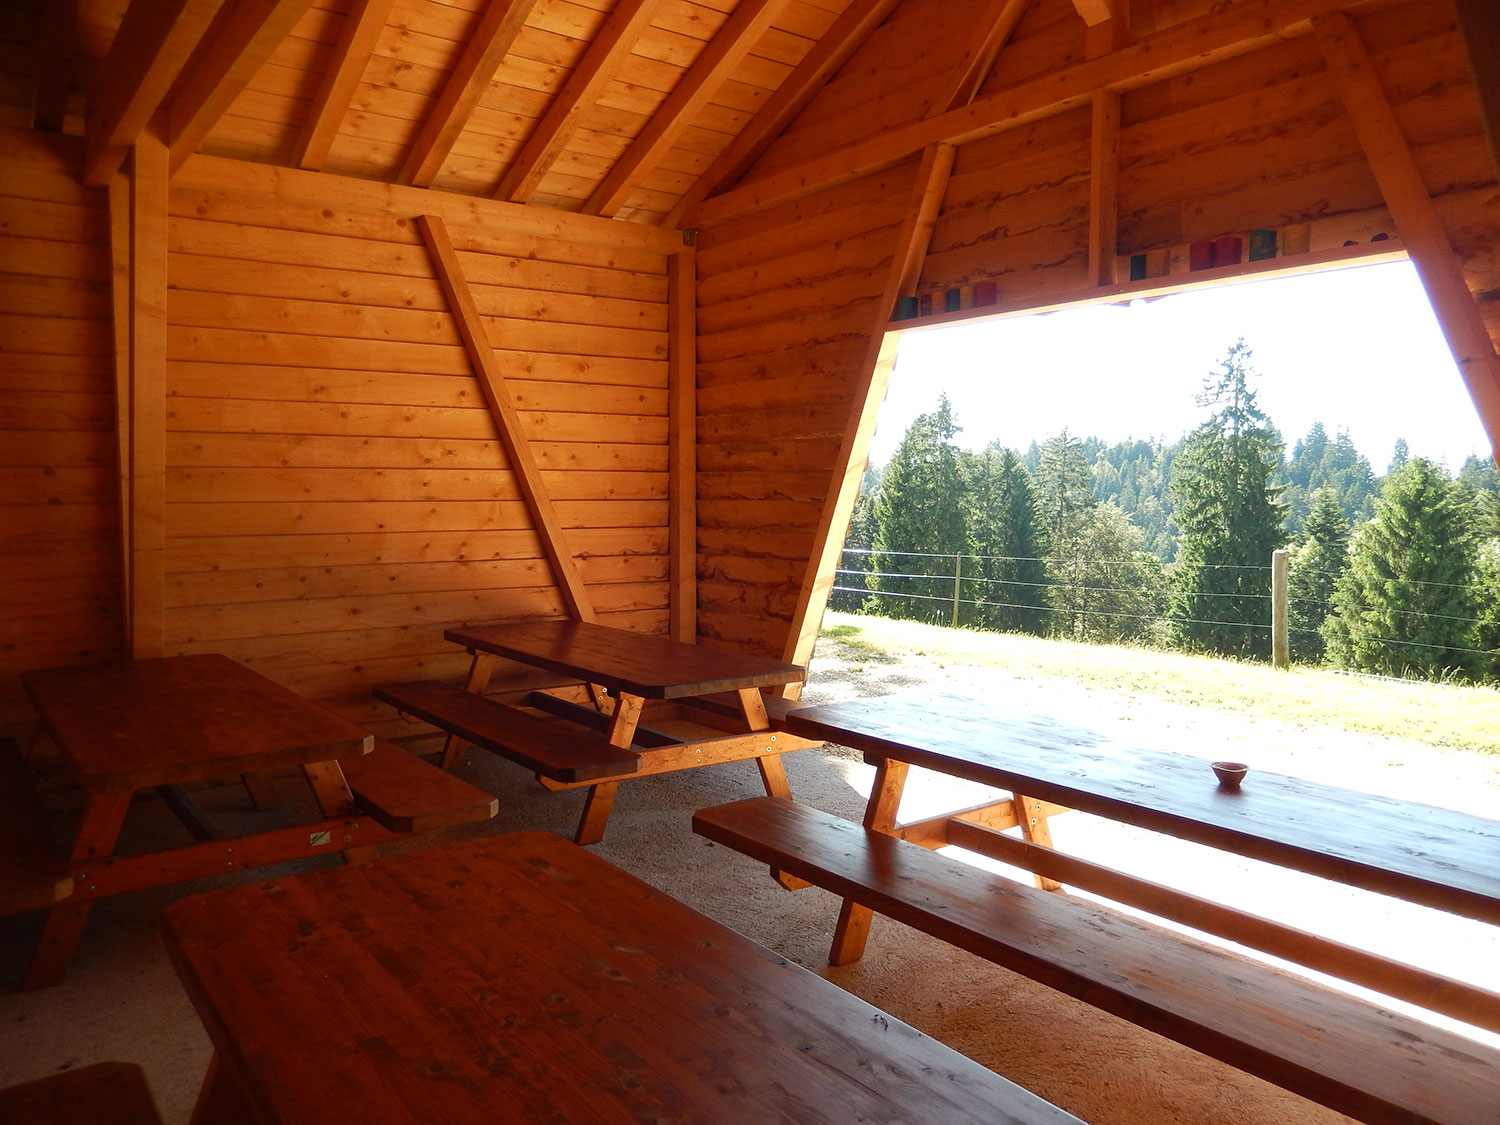 cabane-forestiere-saulcy-jura-suisse-5